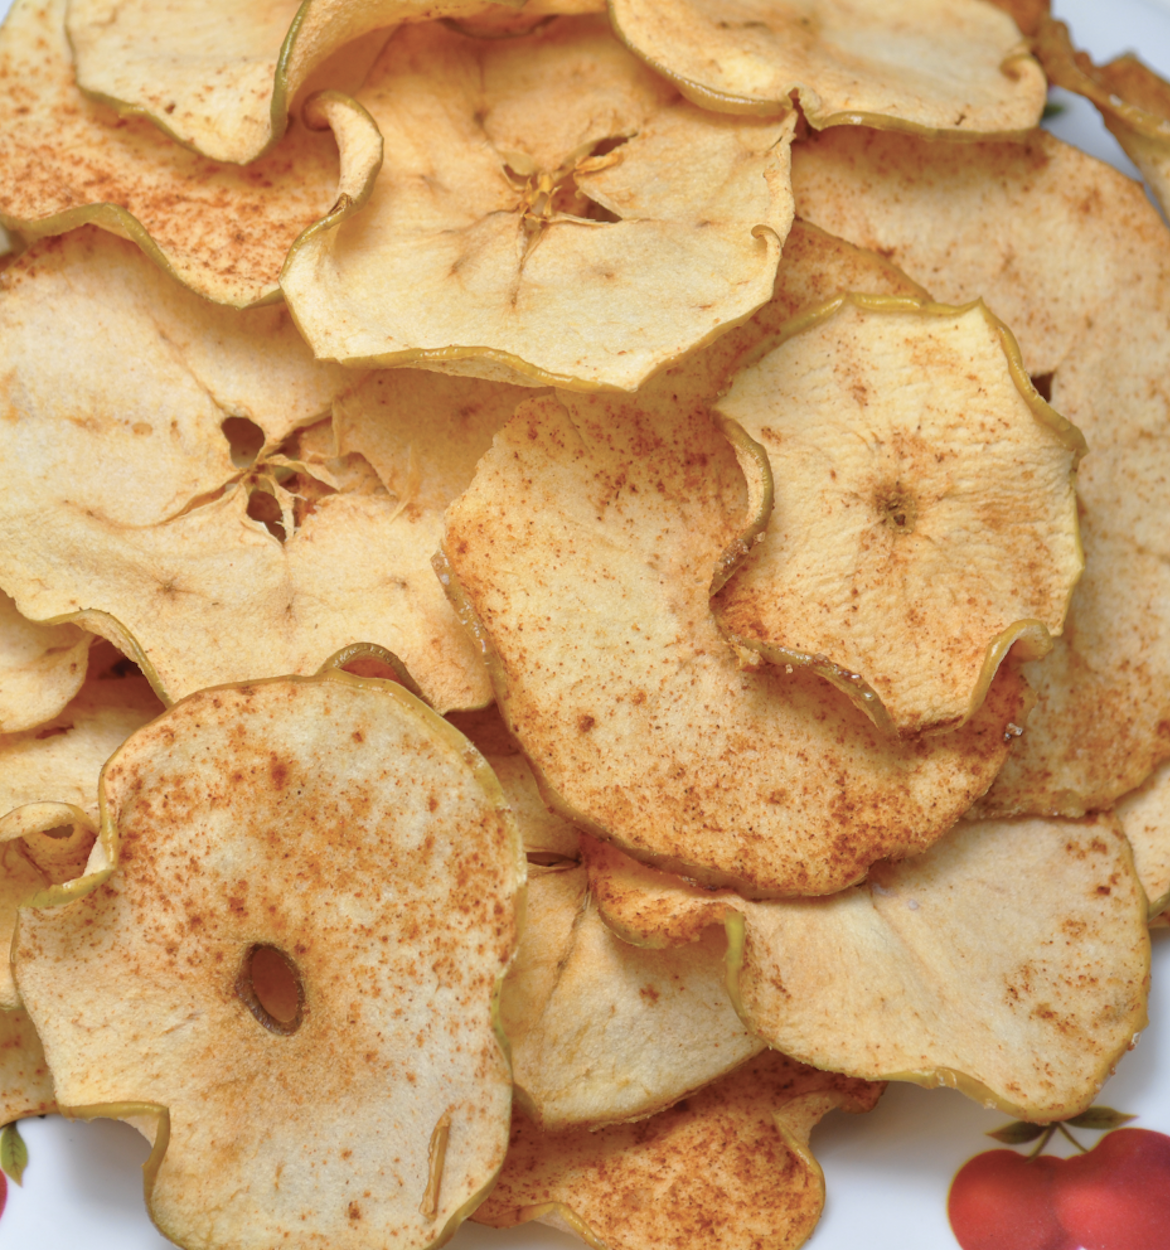 Homemade Red Apple Chips